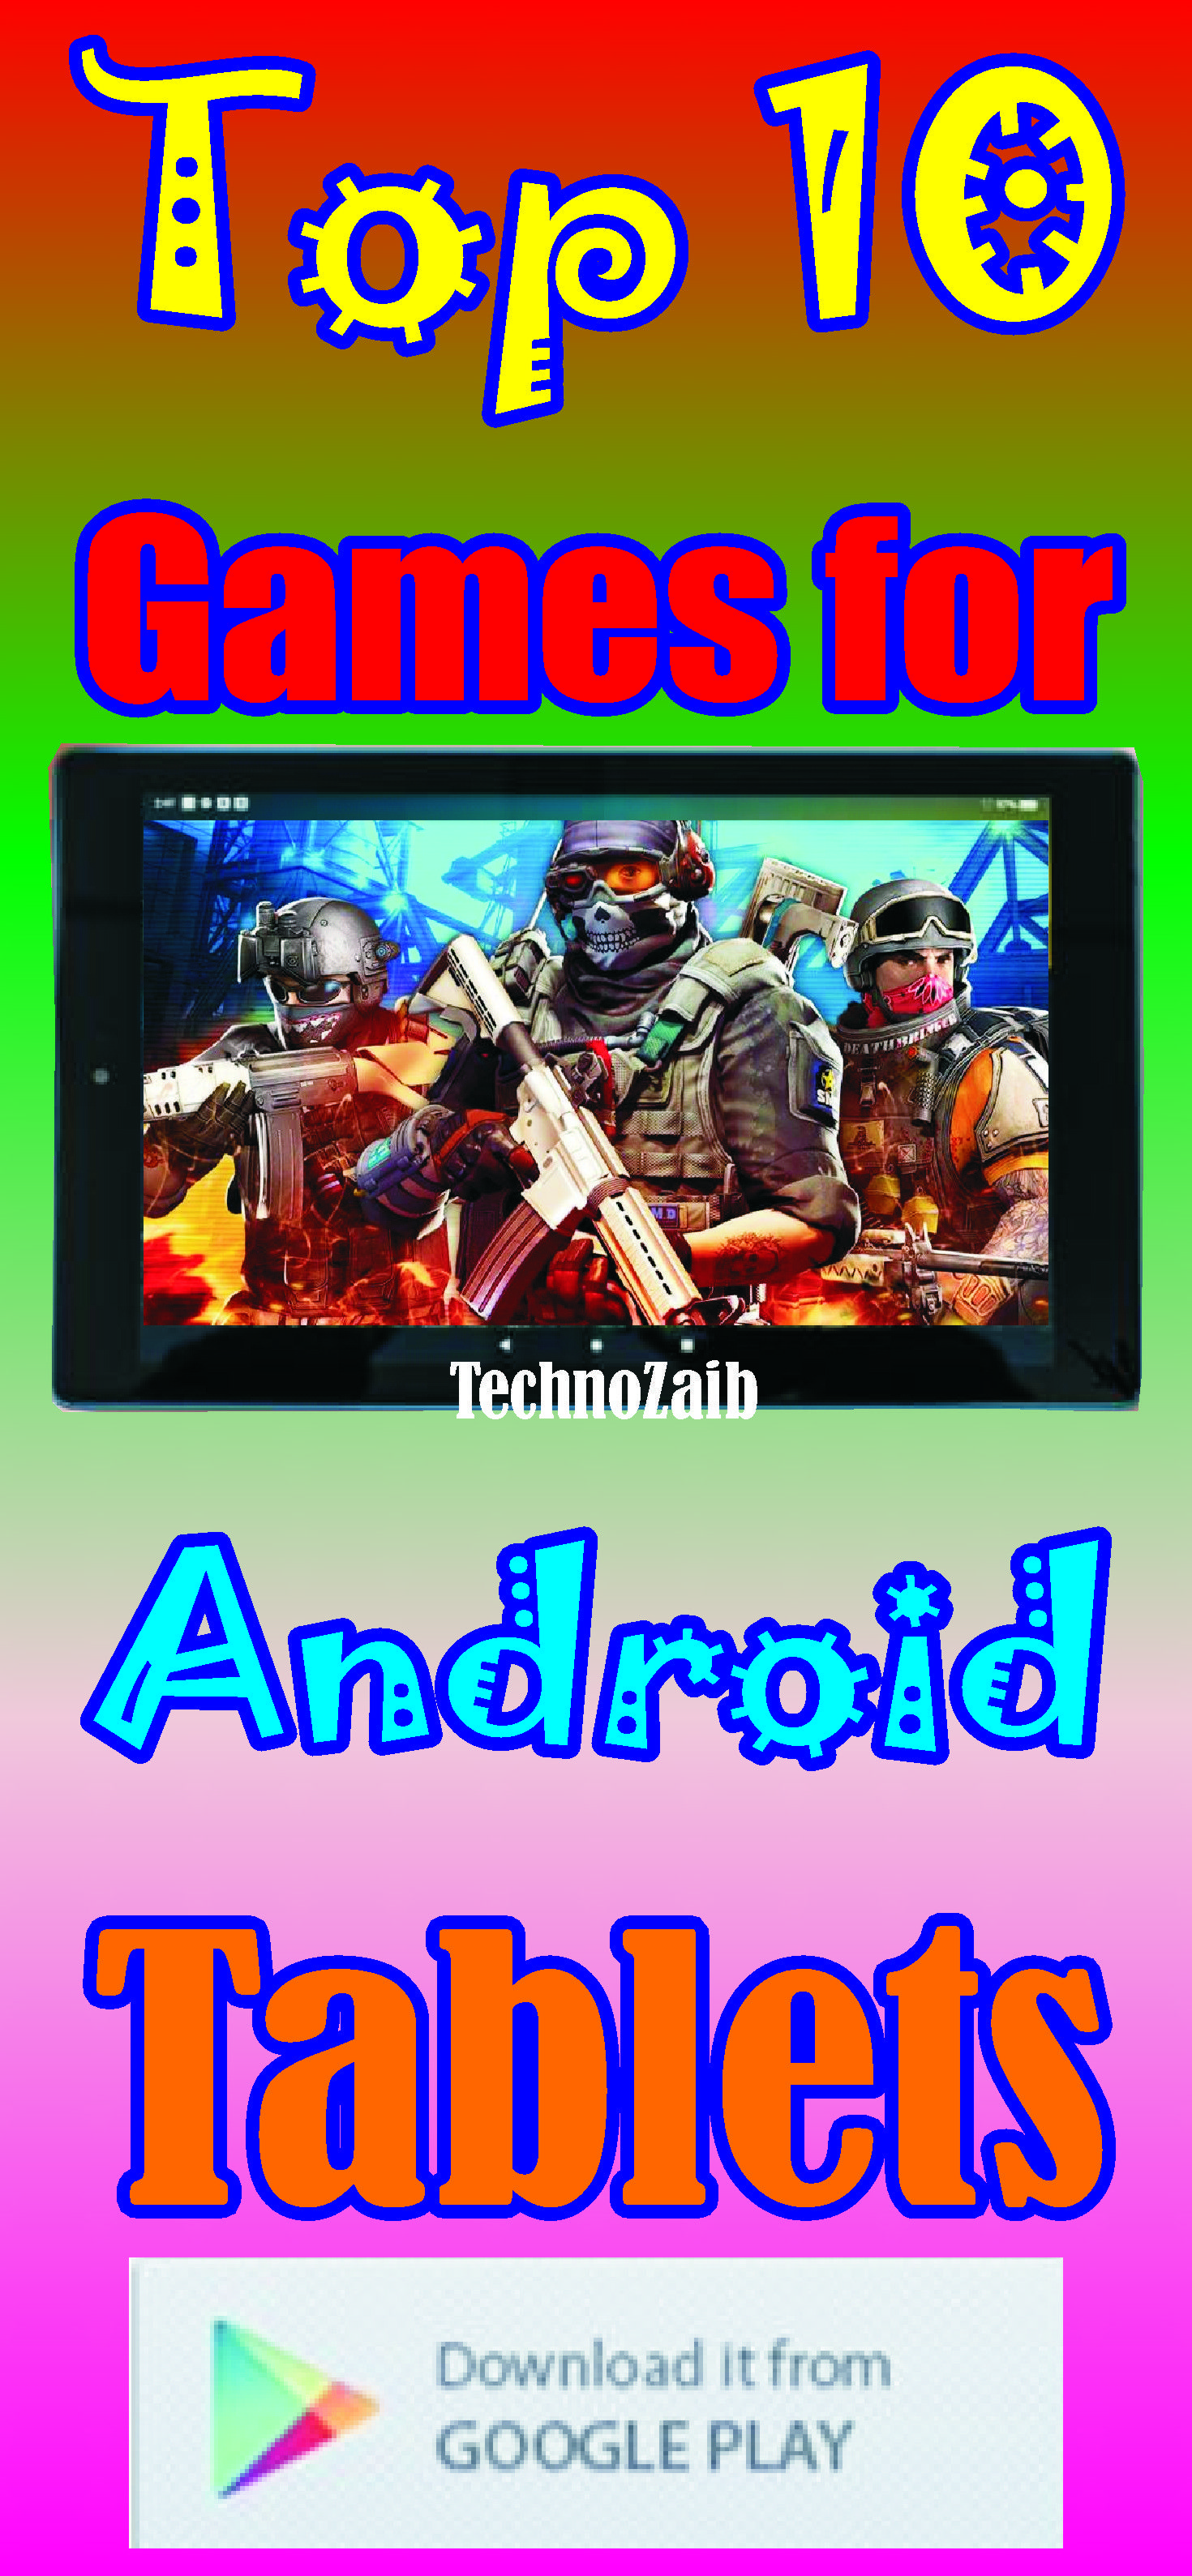 A list of the top ten games available online for Android